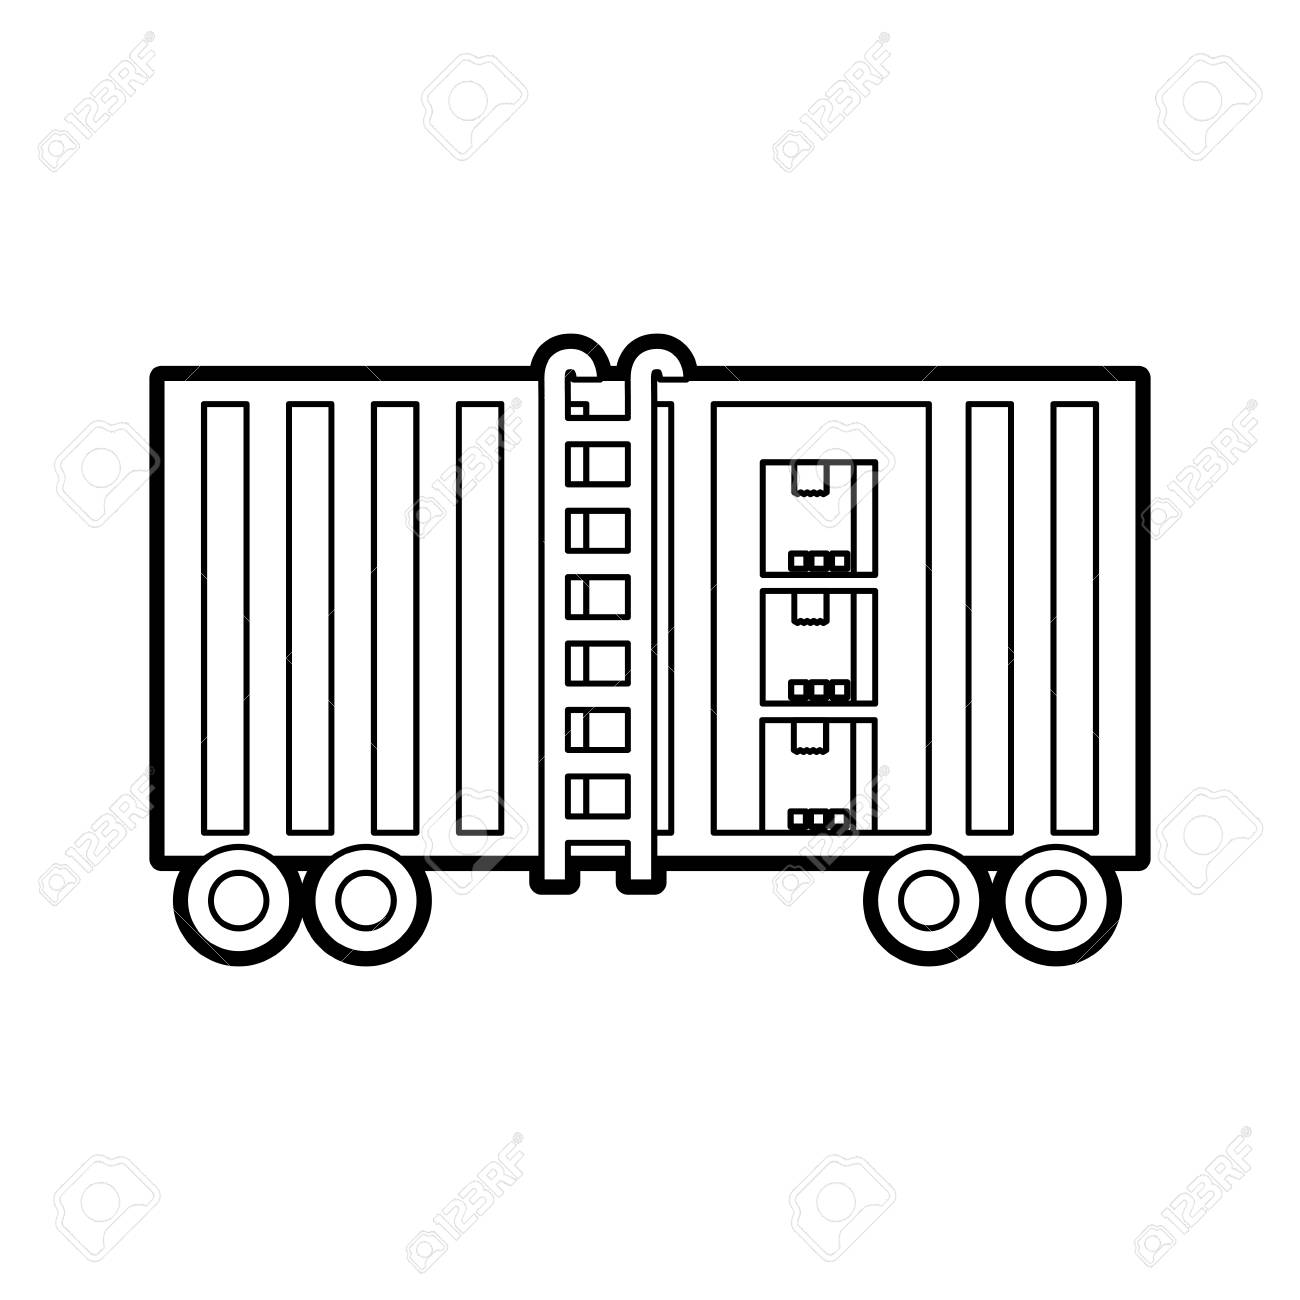 Image result for freight logistics vectors white black